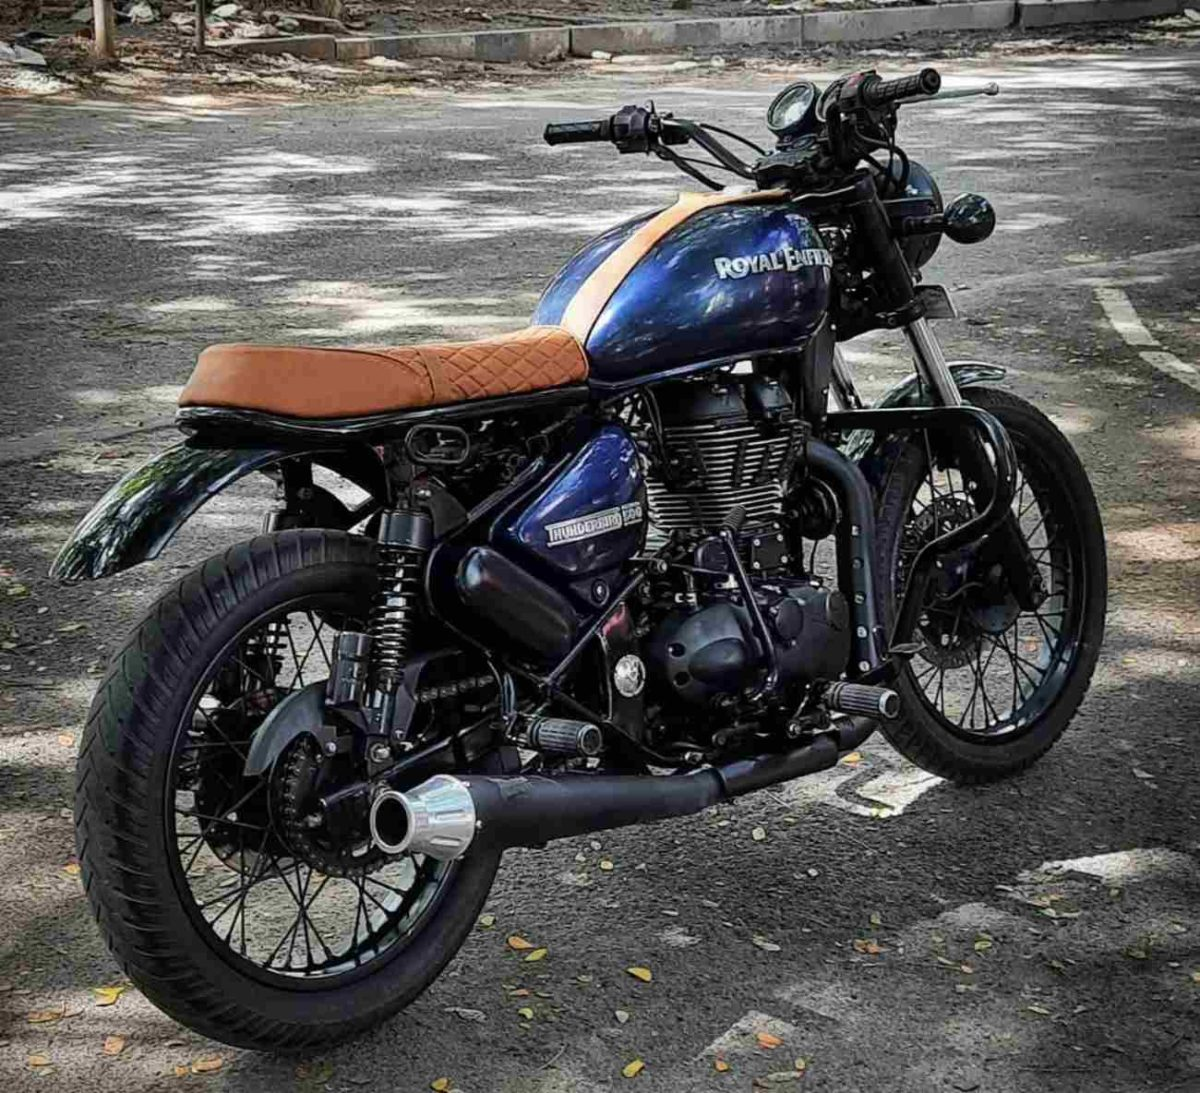 This Bolt On Kit Can Convert Your Royal Enfield Into A Scrambler In Just 30 Minutes Motoroids